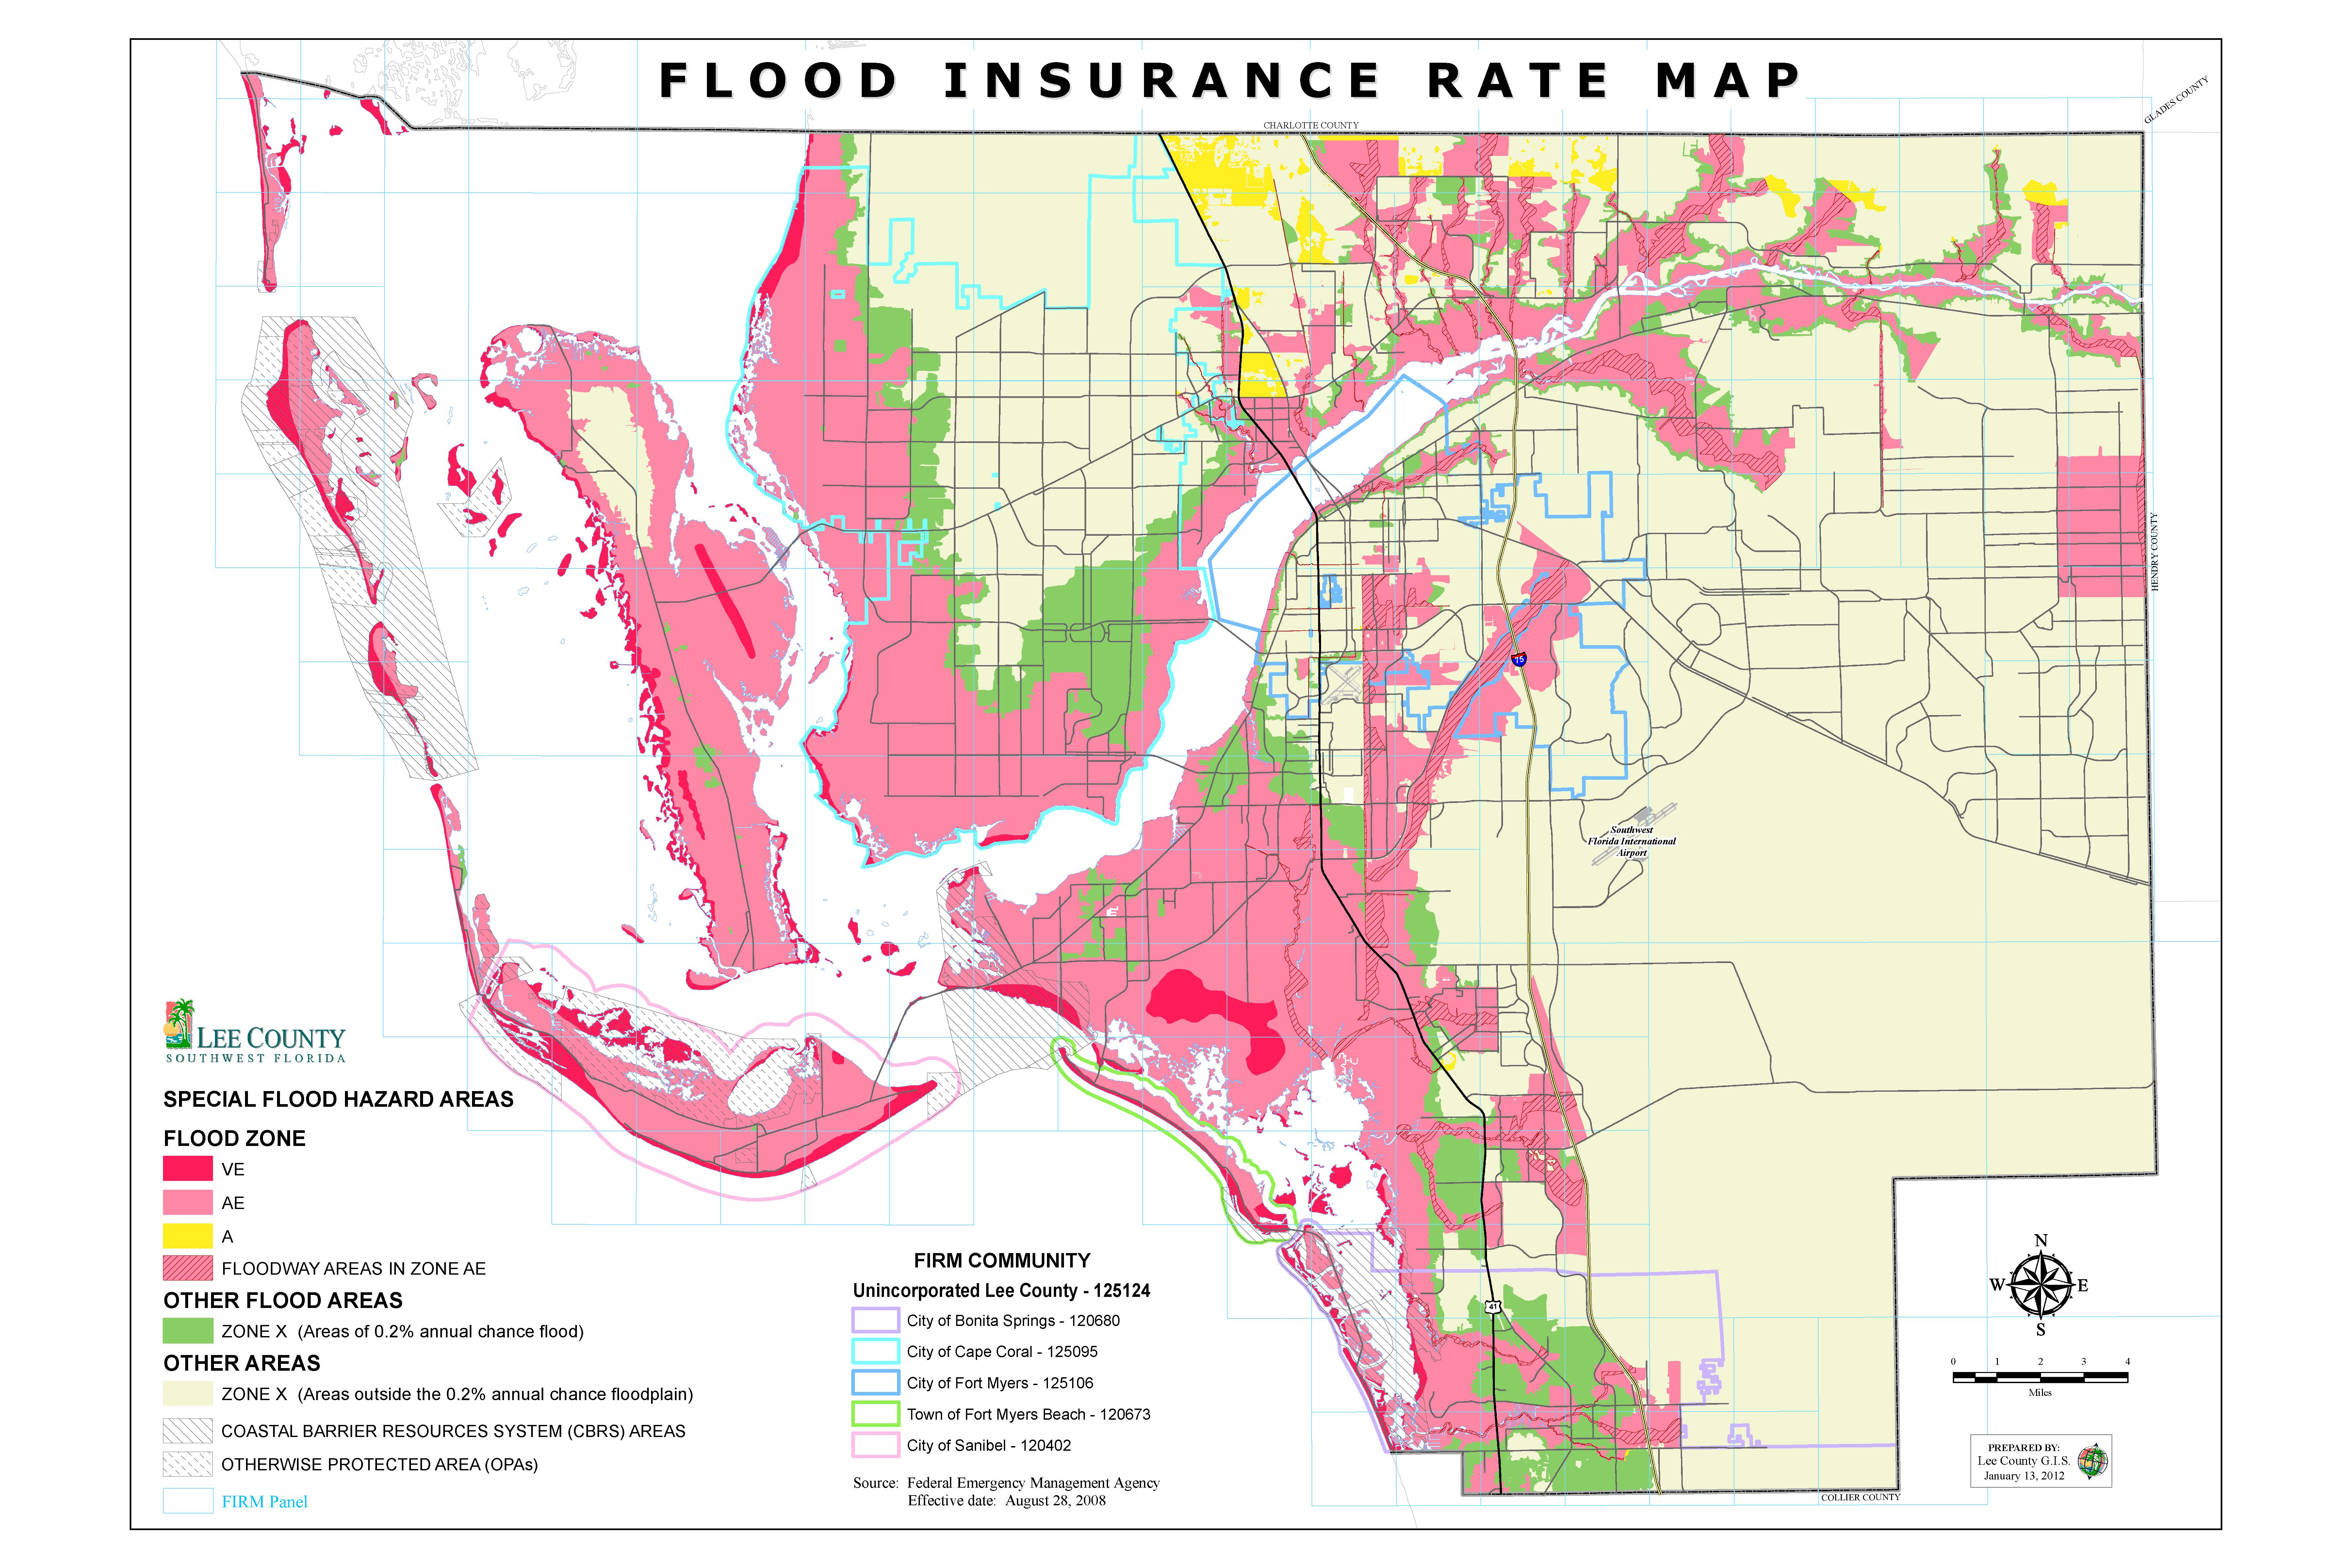 Firm Map Florida Flood Insurance Rate Map Florida Perfect Firm Maps - Flood Insurance Map Florida